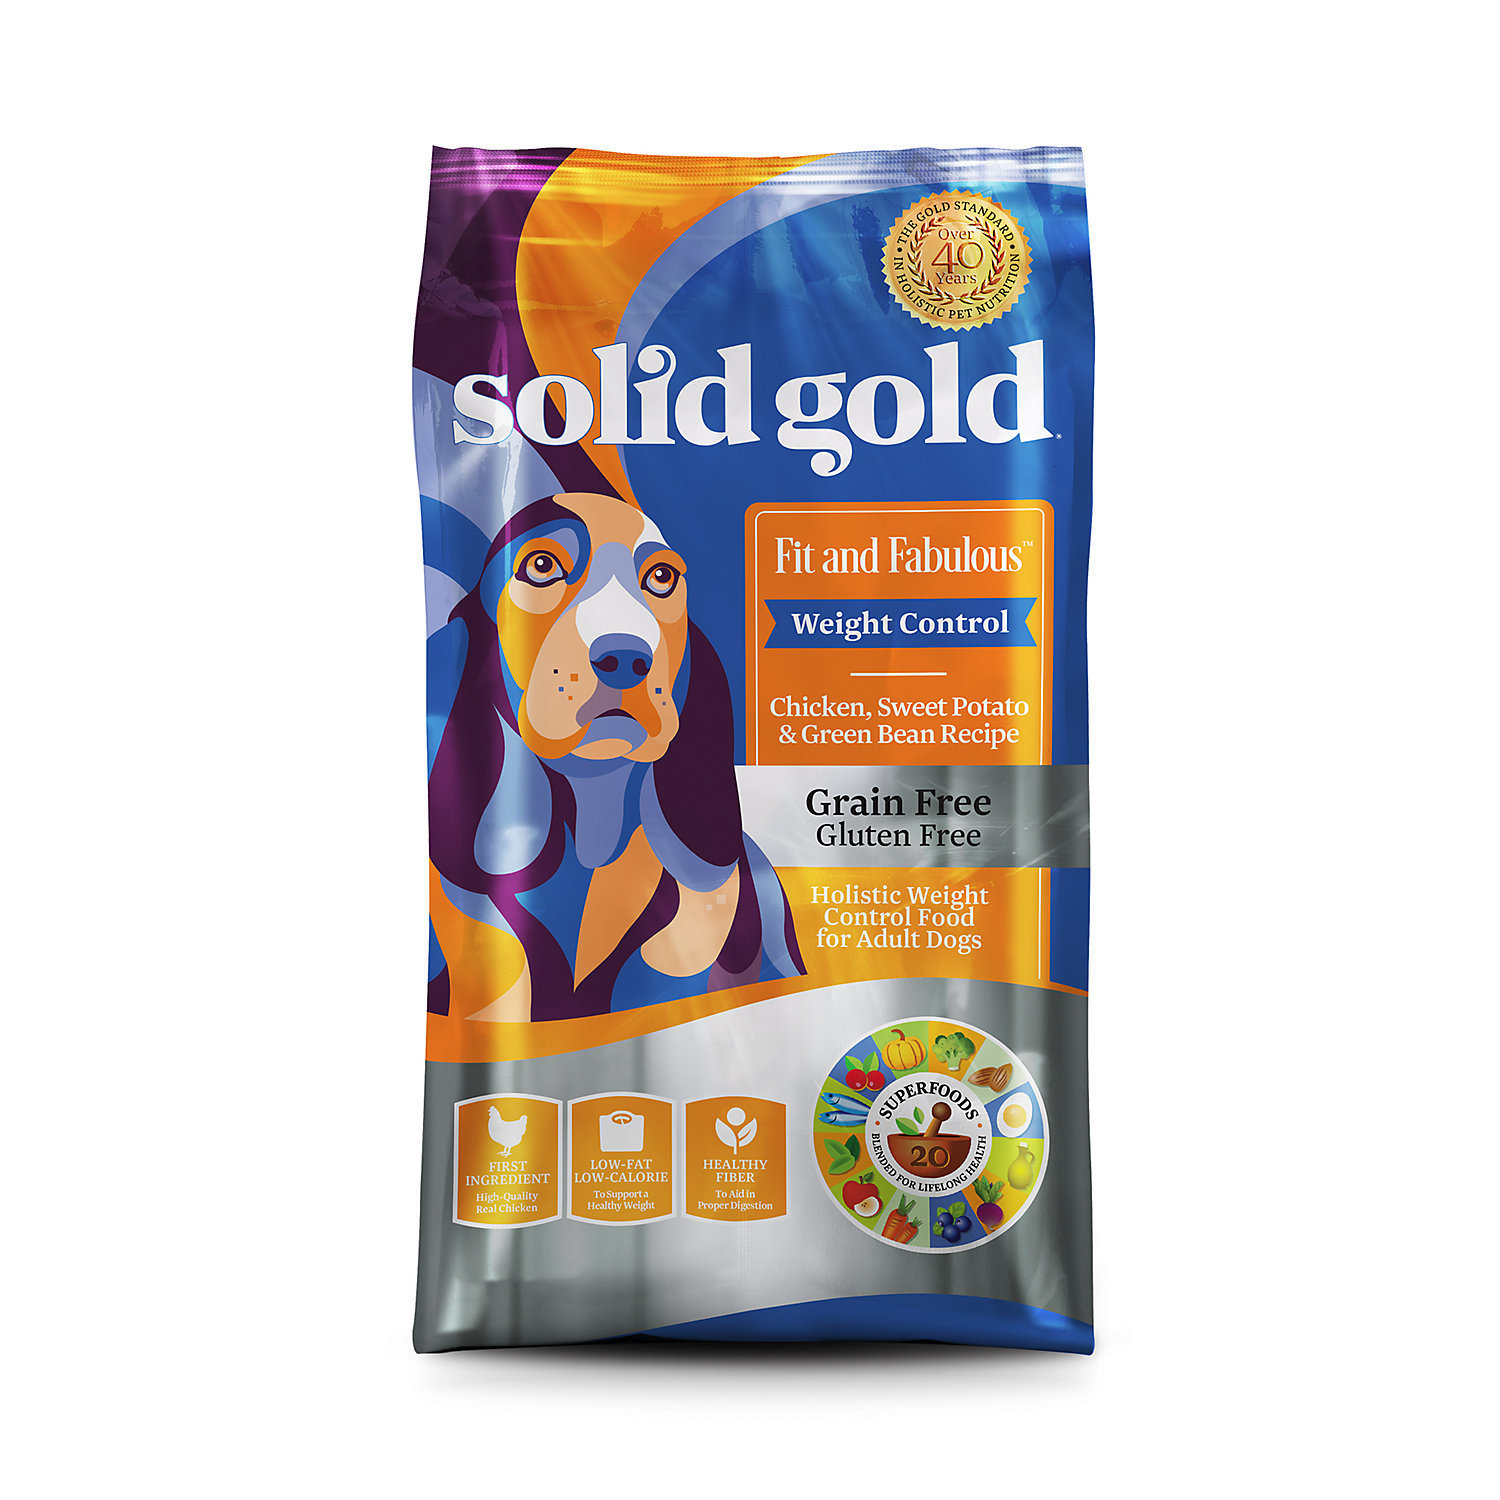 Solid Gold Fit & Fabulous Chicken, Sweet Potato & Green Bean Weight Control 4 lb. (1/18) (A.J1)